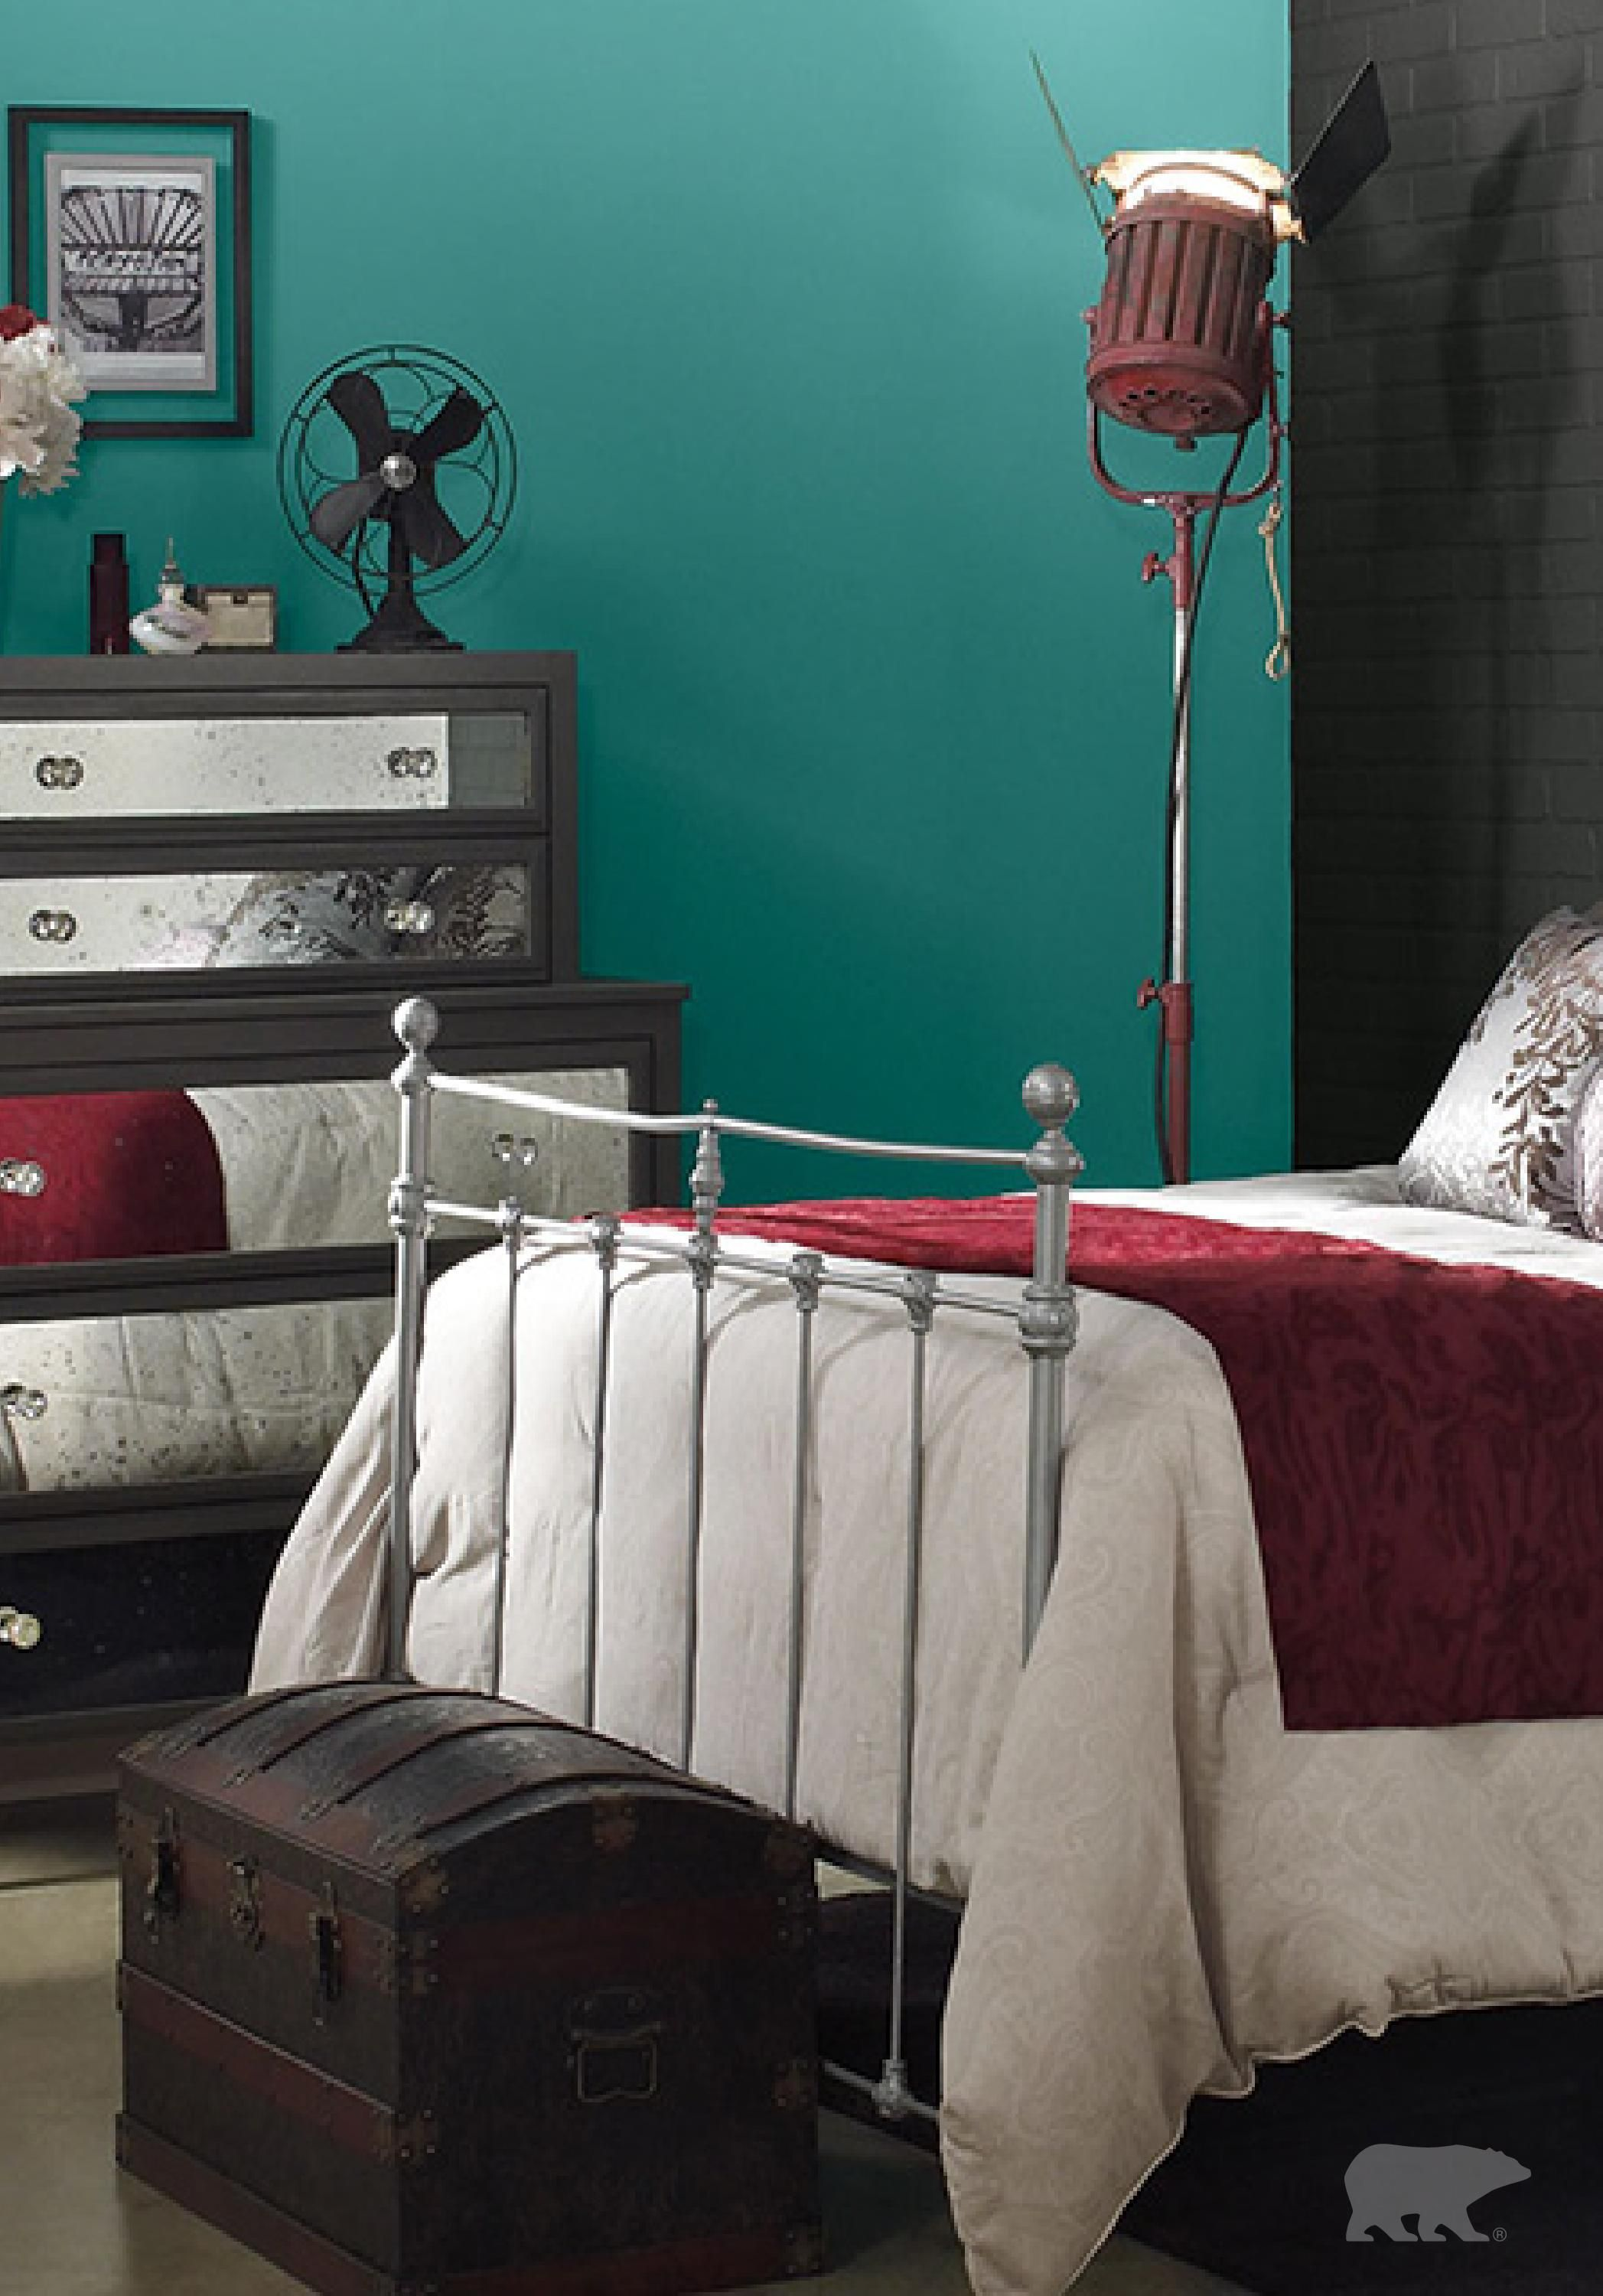 Nothing Adds A Sophisticated Spin To A Space Quite Like A Jewel Toned Teal.  When Itu0027s Combined With Rich Maroon And Mirrored Furniture Accents, Your  Bedroom ...